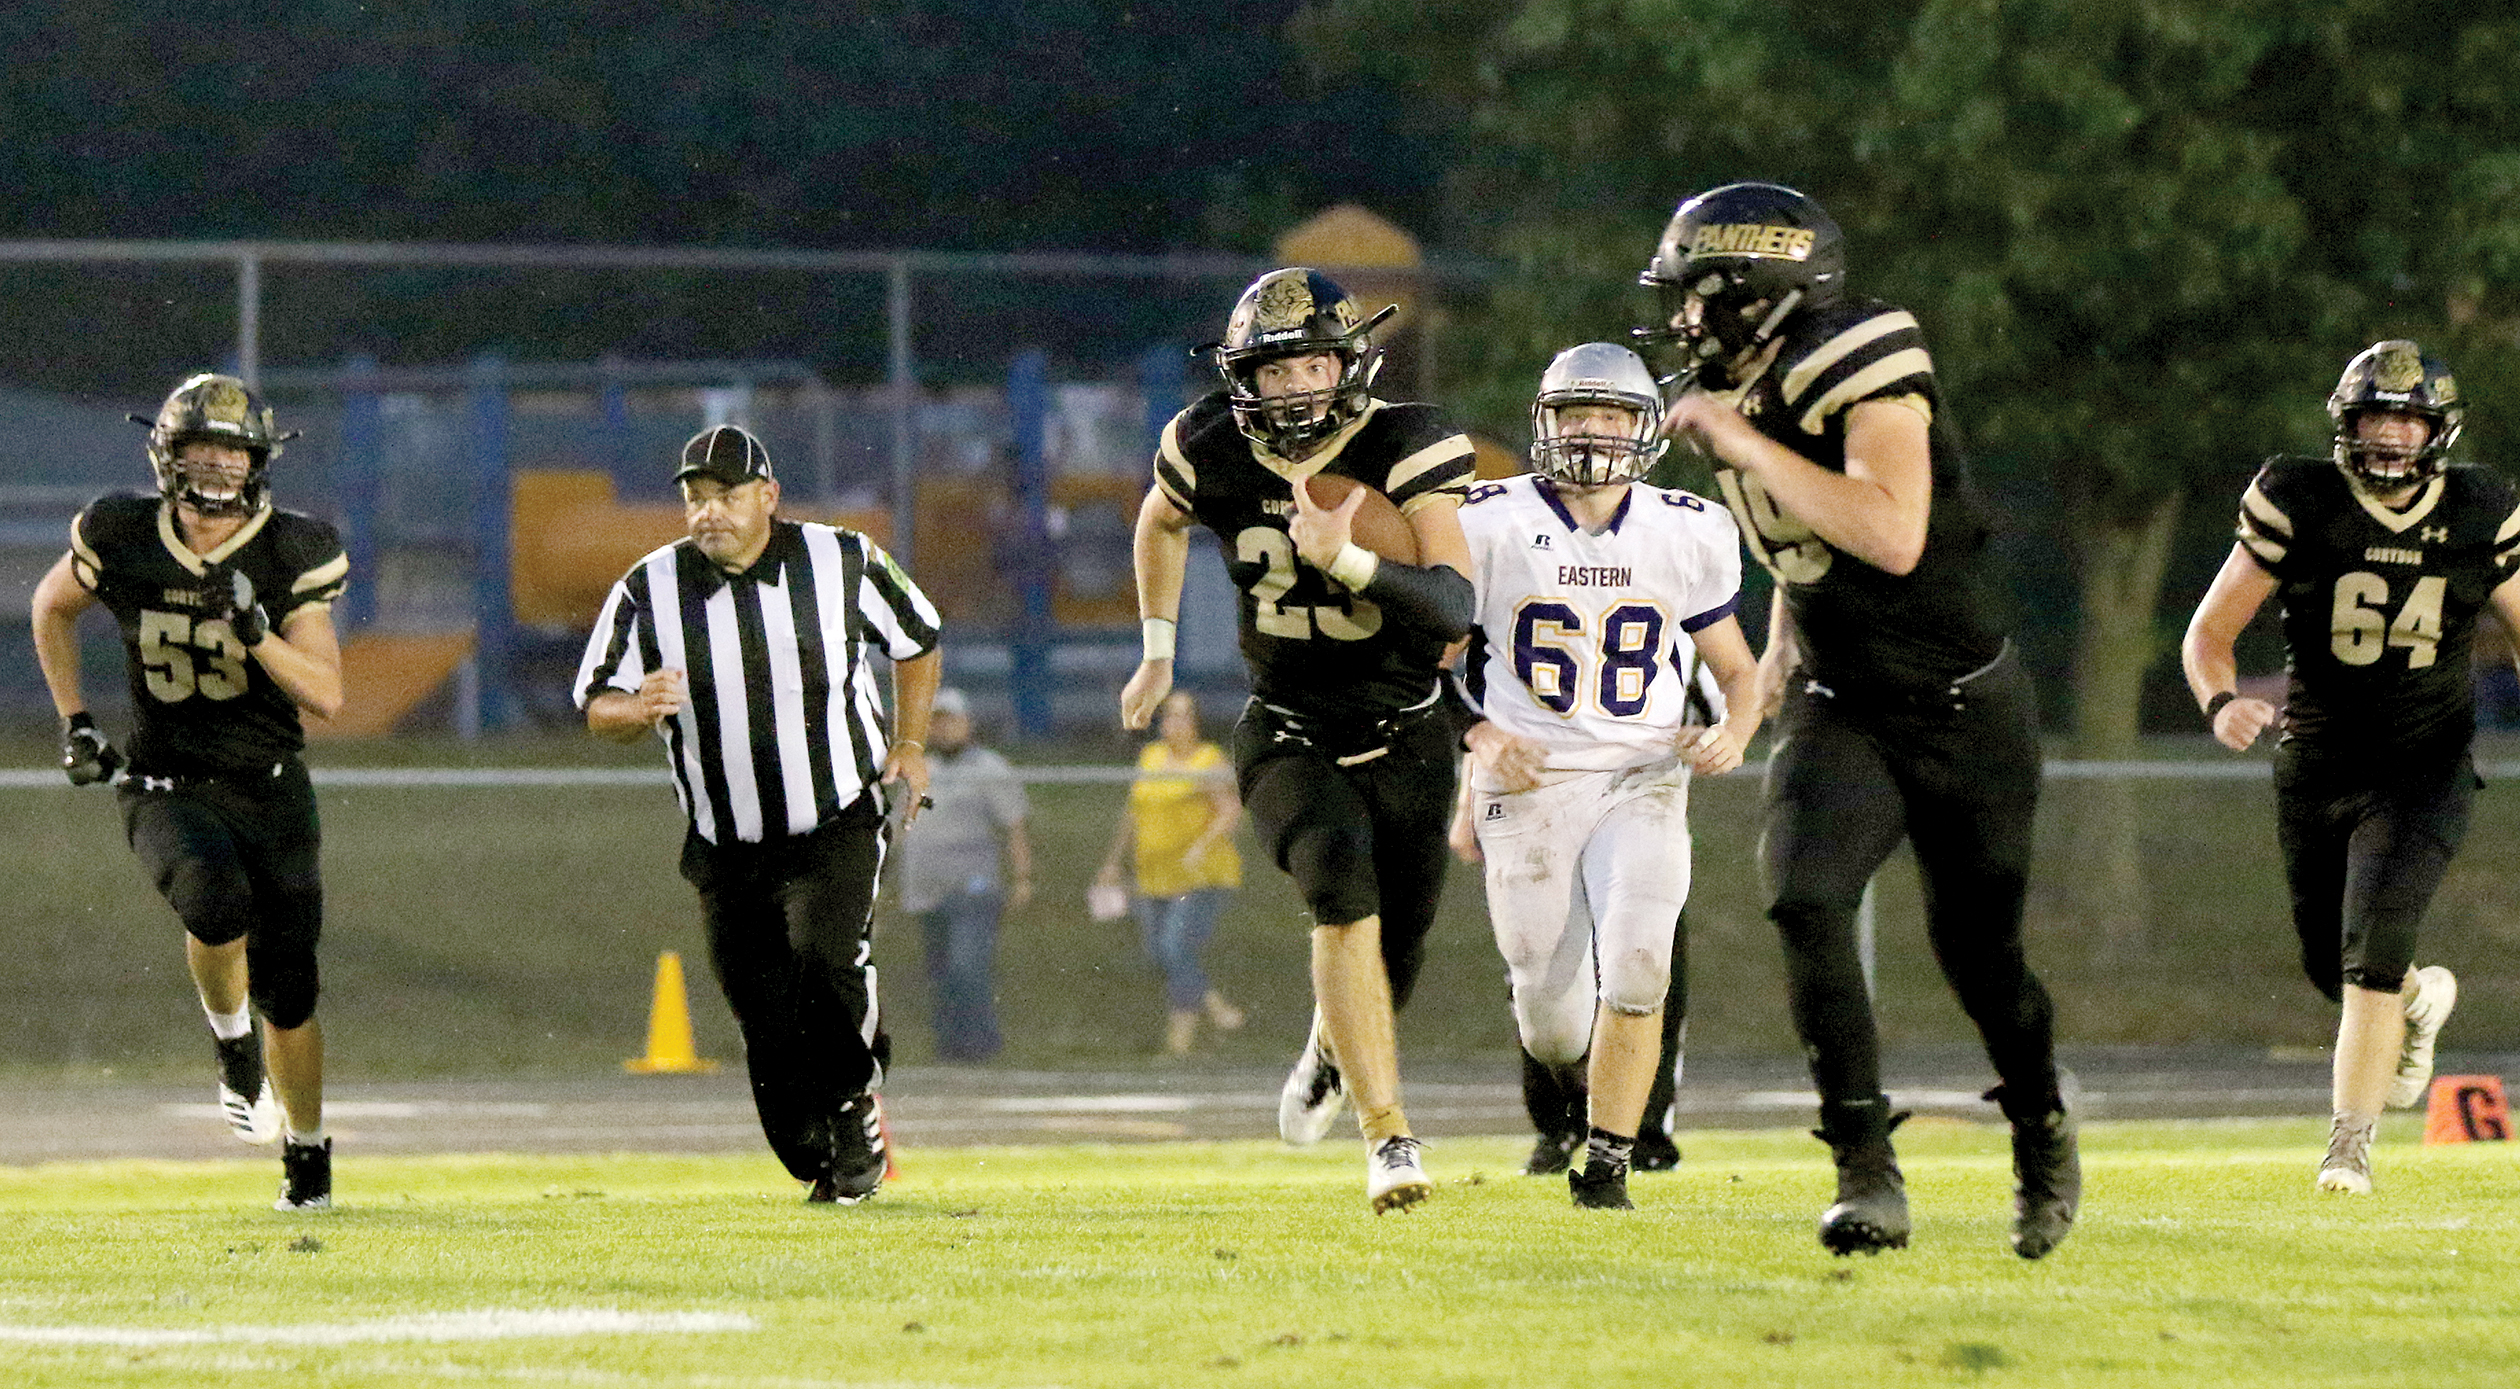 Panthers get rich in 2nd half